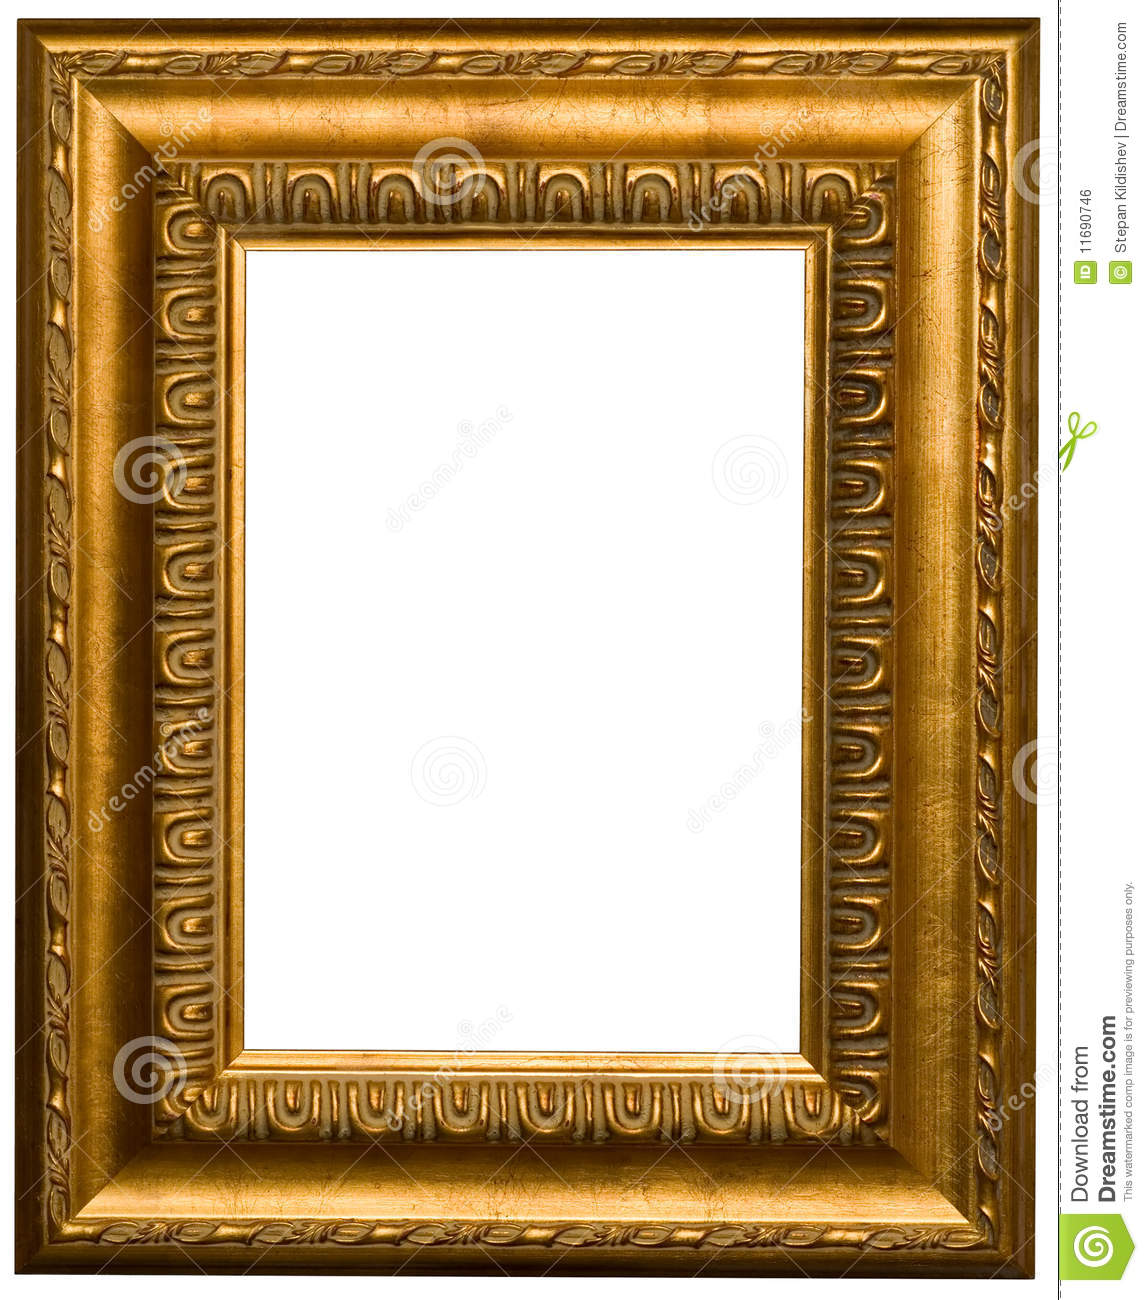 Gold Picture Frames Royalty Free Stock Image Image 11690746